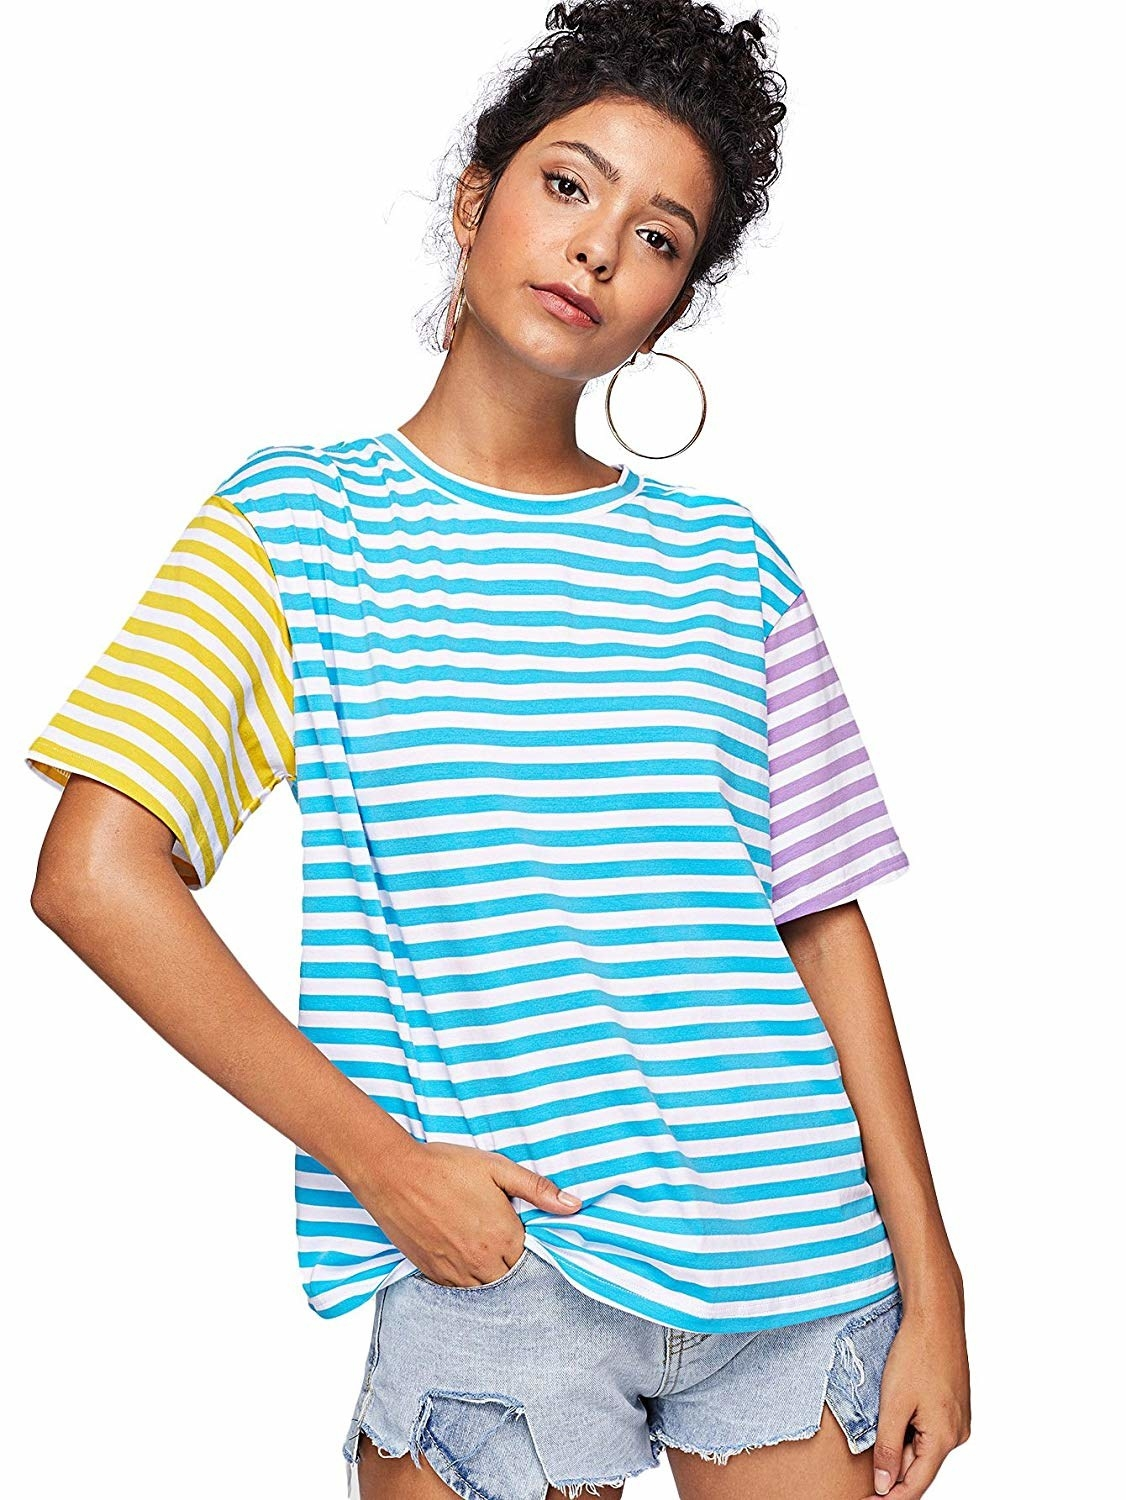 366f2e9322 A striped crewneck tee to cure anyone's writer's block with a solid color  block.